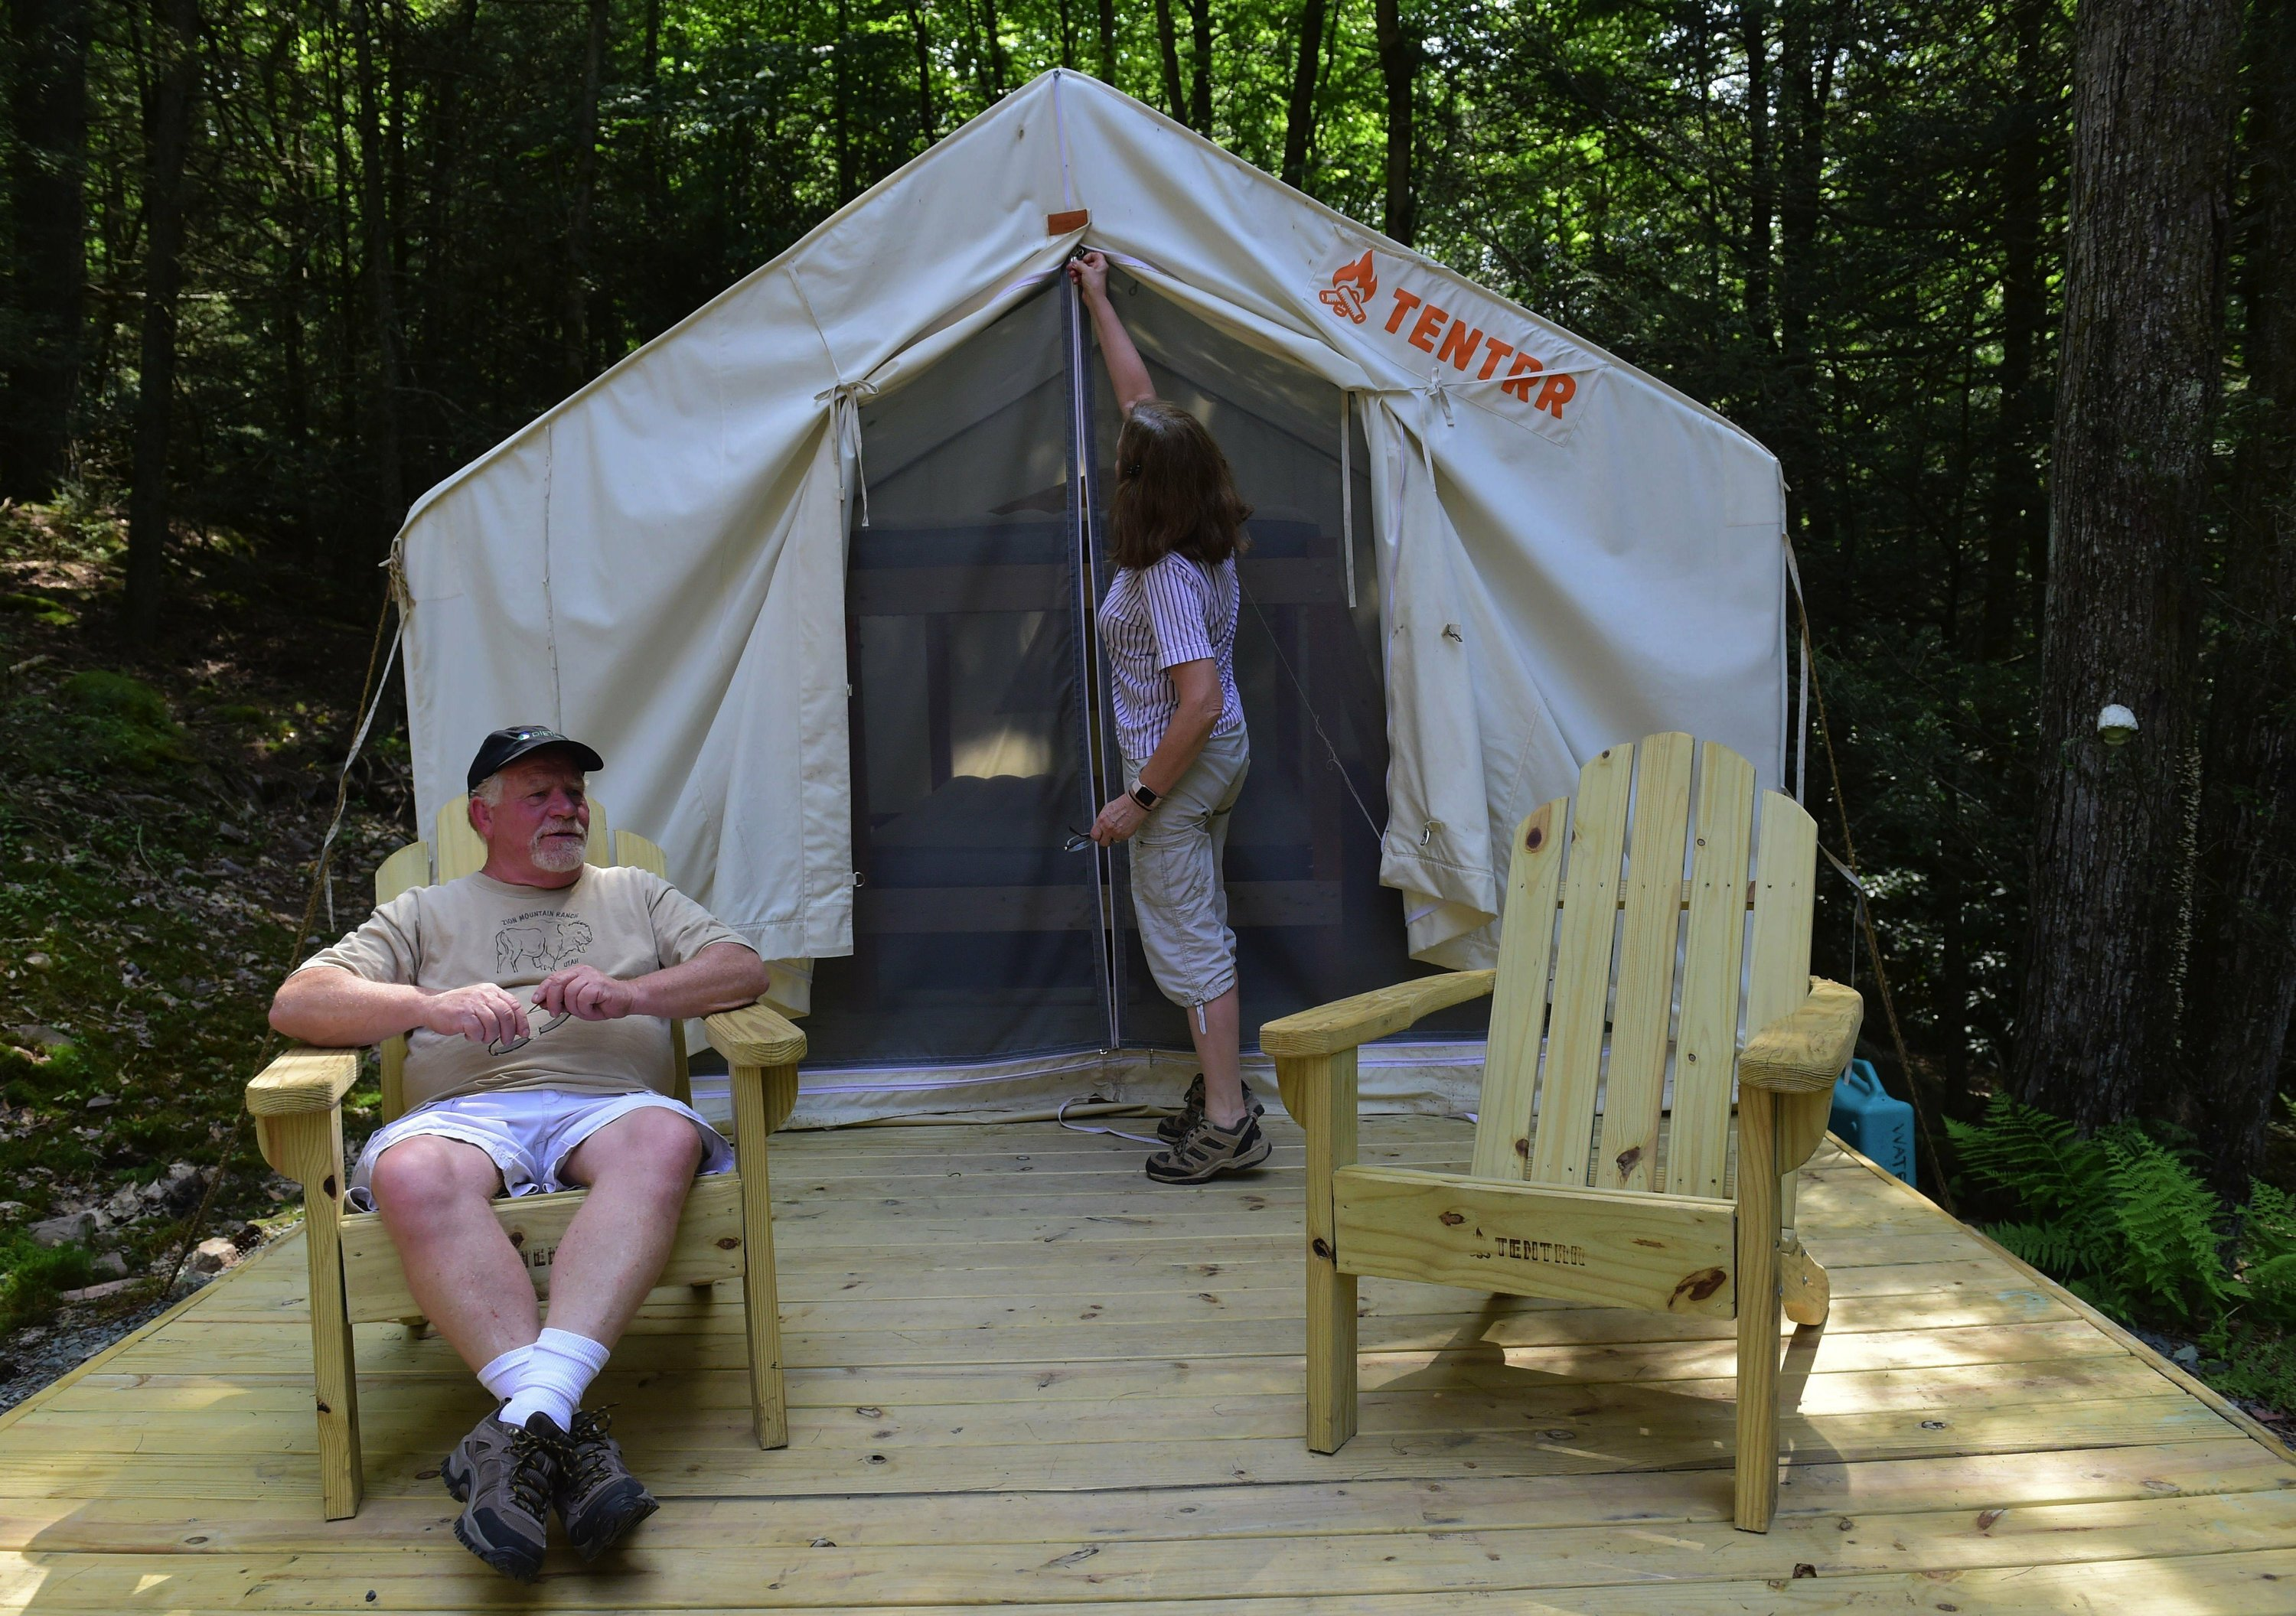 Tentrr, the Airbnb of camping, comes to Pennsylvania